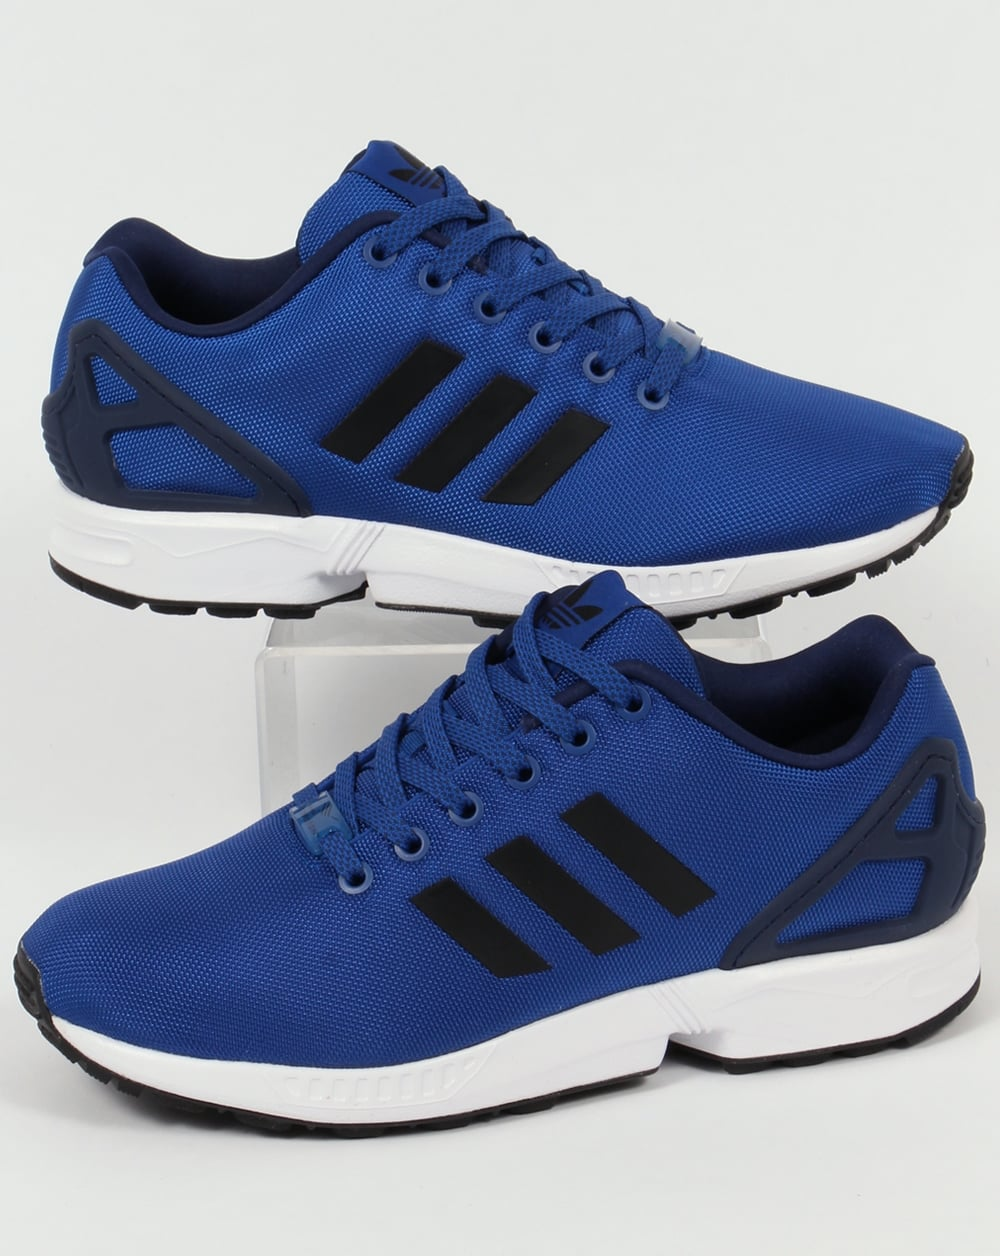 new arrival 000fd b7edf Adidas ZX Flux Trainers Royal Blue/Black